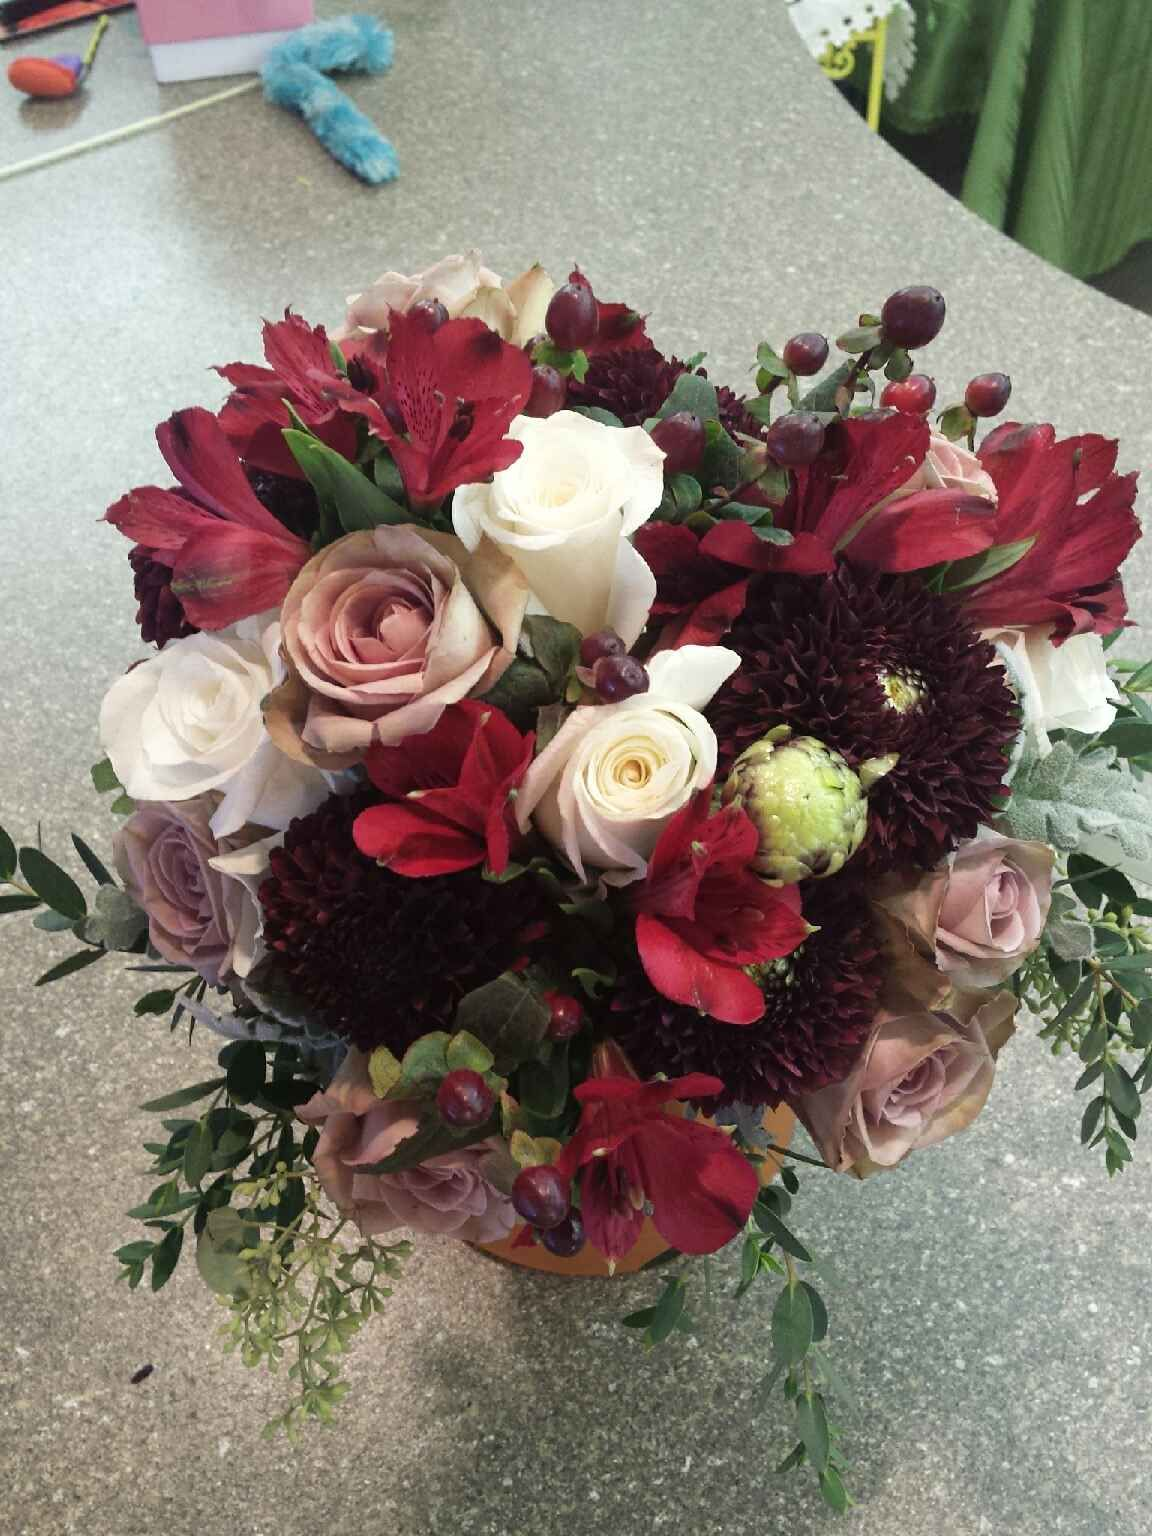 Burgundy Taupe And White Bouquet Featuring Burgundy Dahlias Amnesia Roses White Roses Burgundy Alstromeria A Wedding Bouquets White Bouquet Burgundy Dahlia